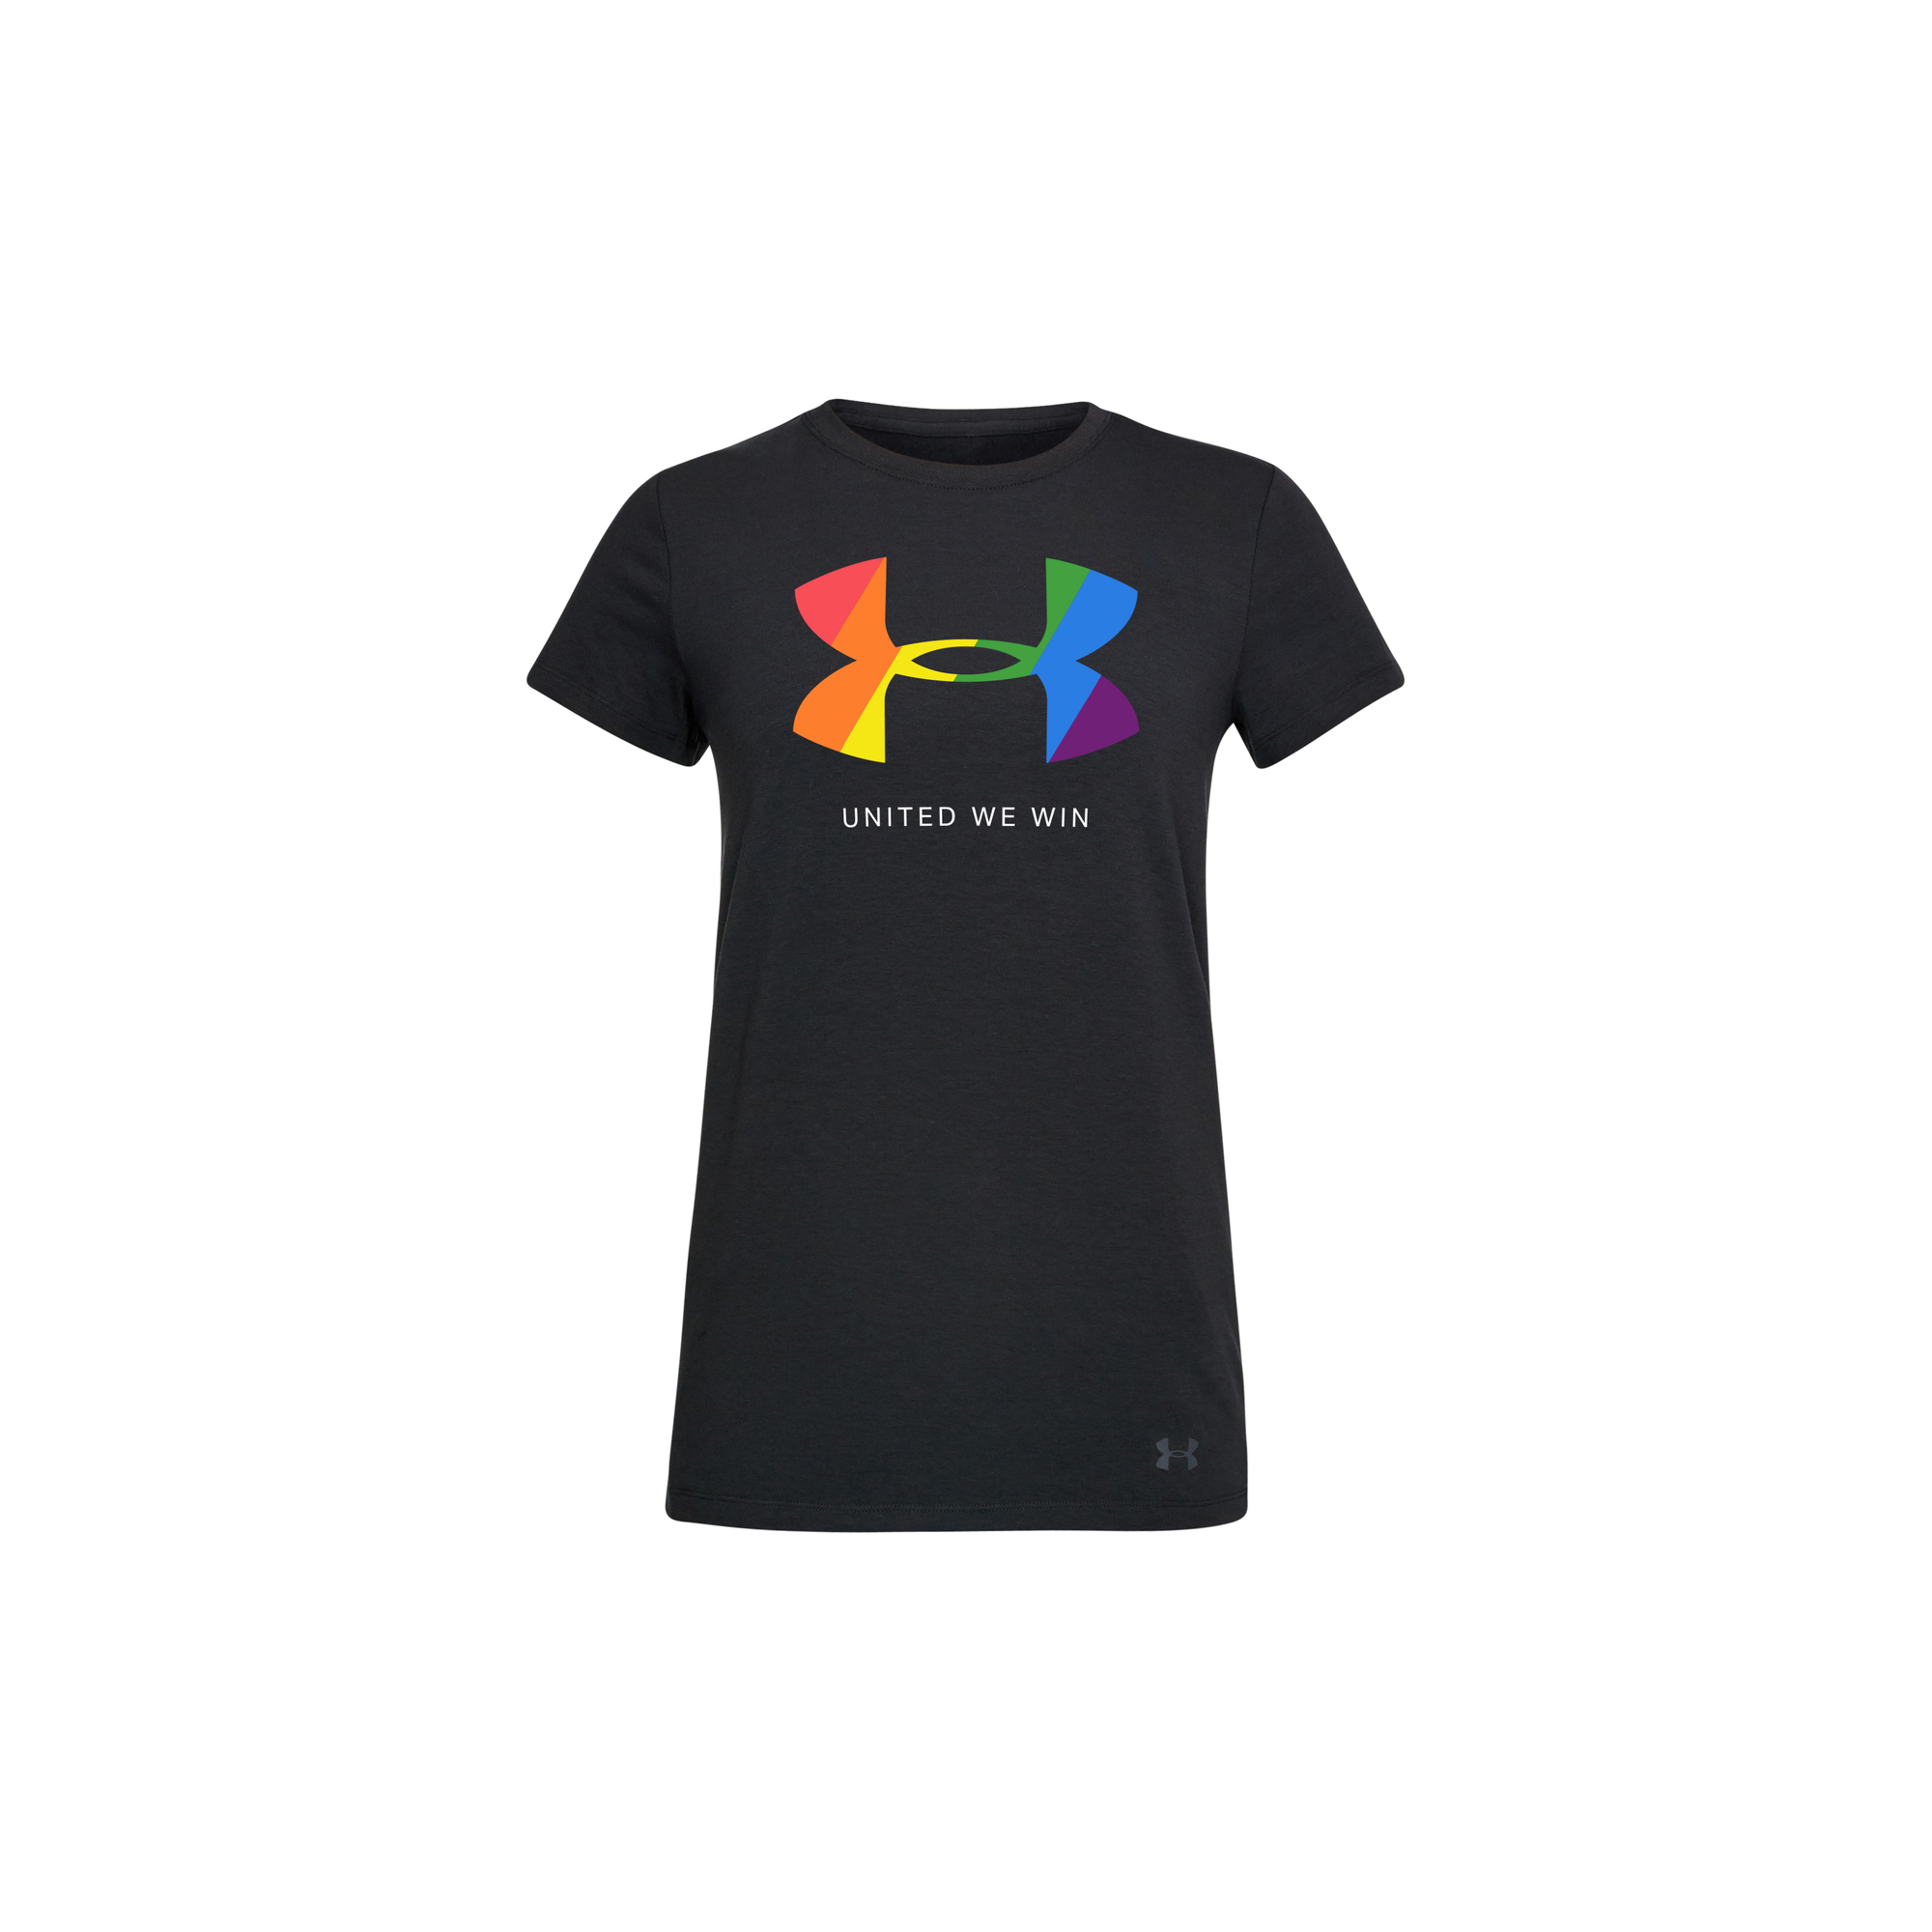 Under Armour pride collection tee